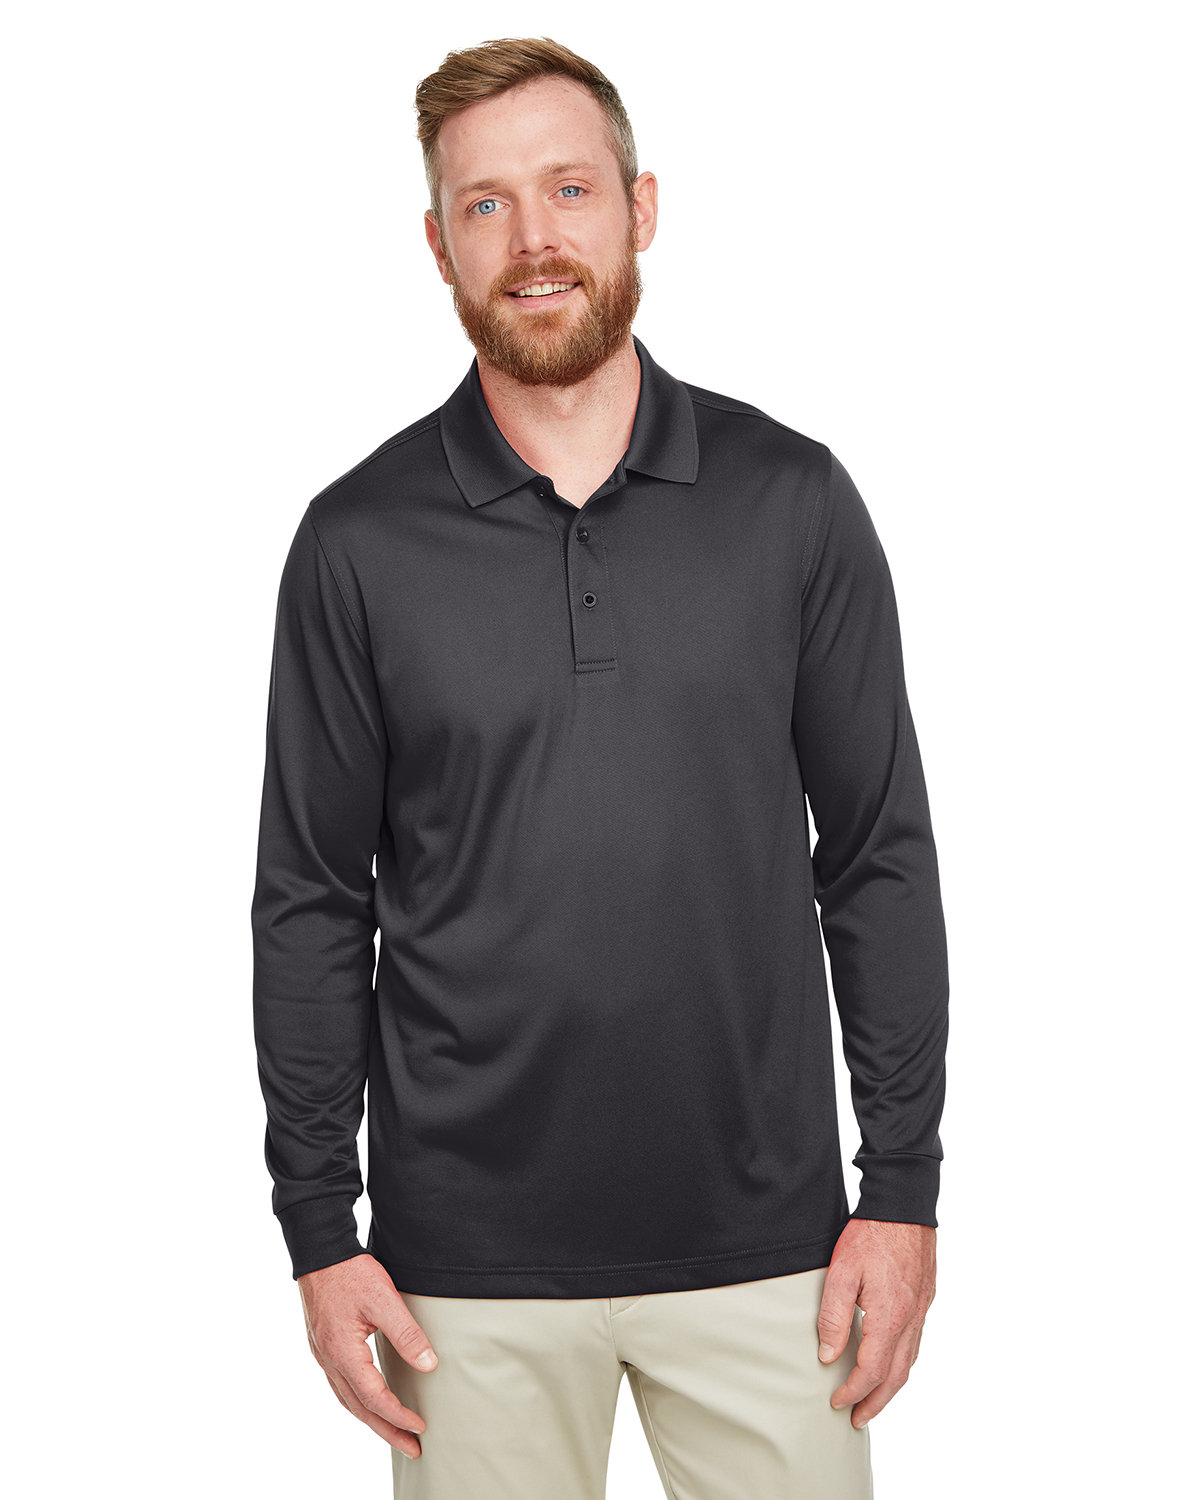 Harriton Men's Advantage Snag Protection Plus IL Long Sleeve Polo DARK CHARCOAL